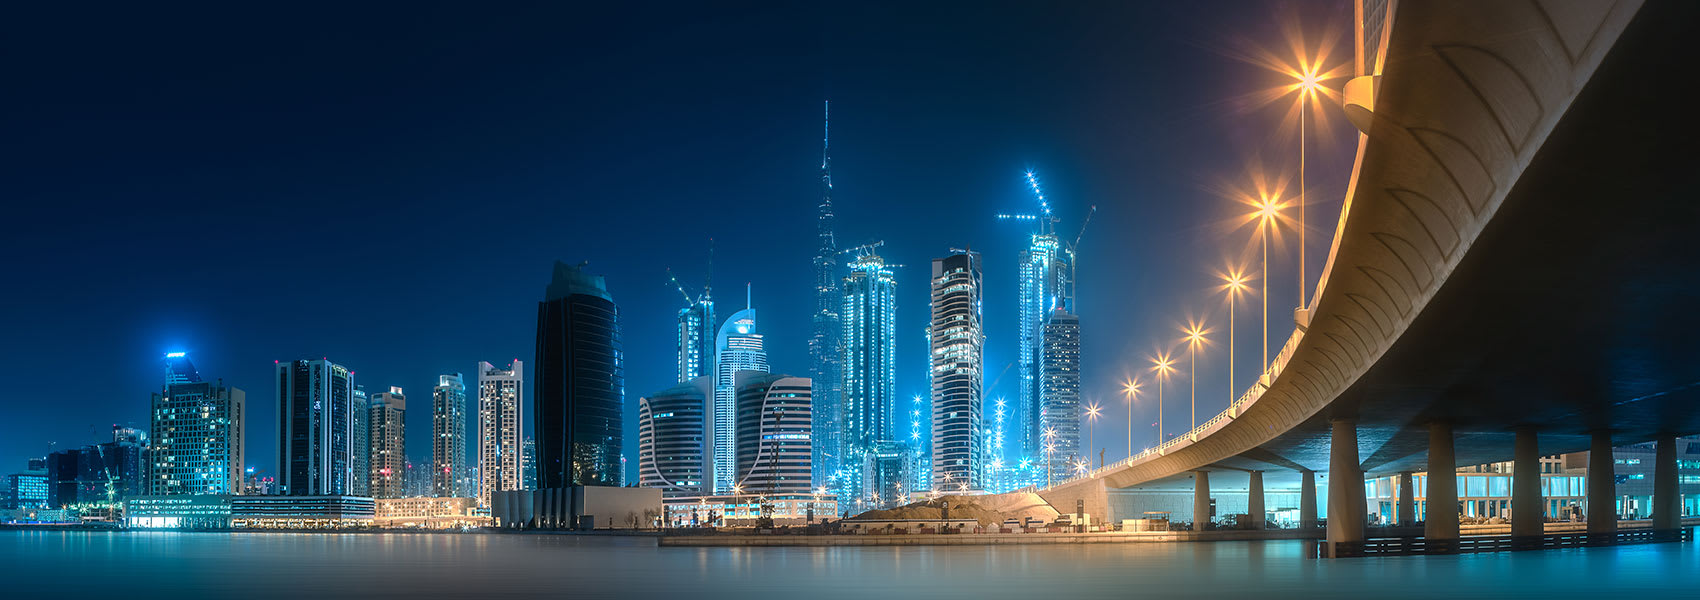 Dubai skyline at night with the city lit up